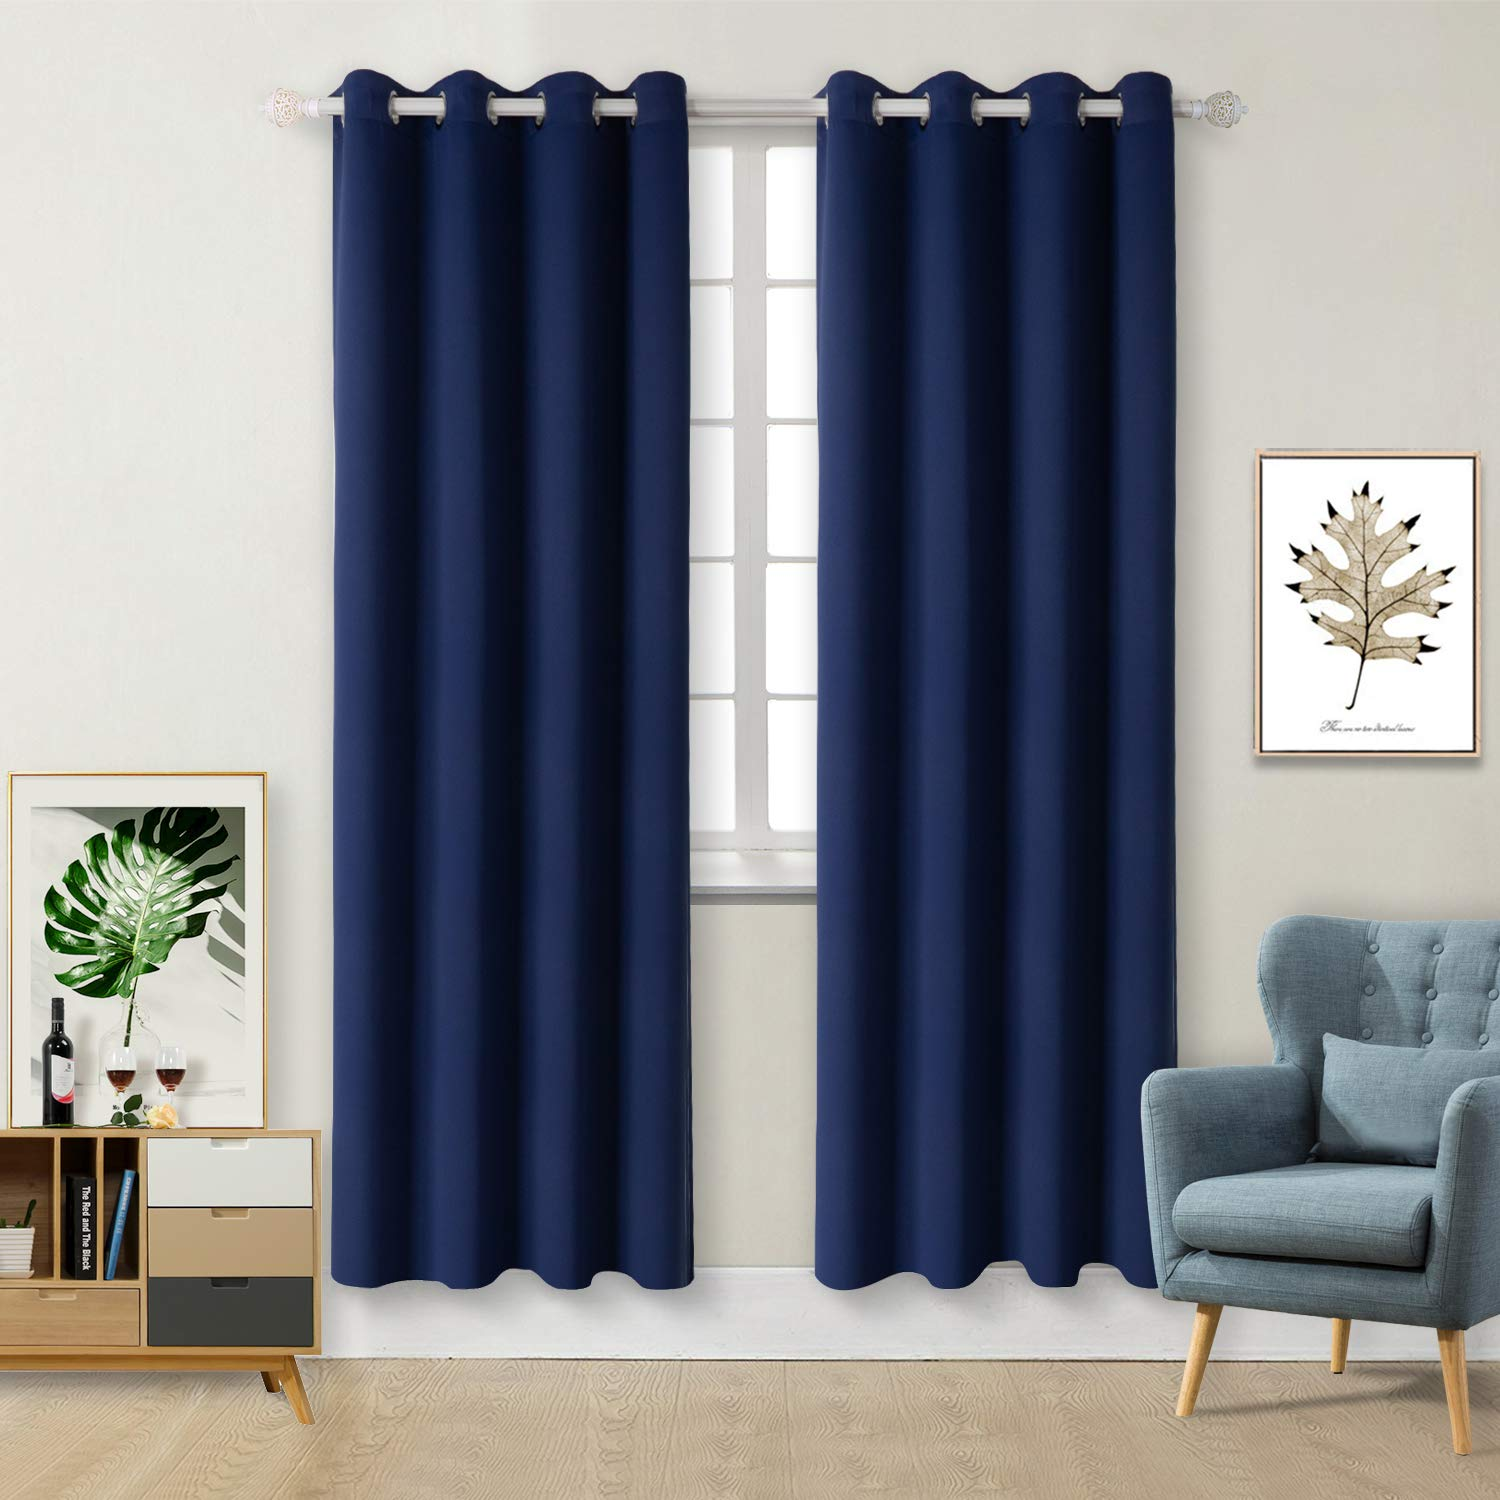 BGment Blackout Curtains for Living Room - Grommet Thermal Insulated Room Darkening Curtains for Bedroom, Set of 2 Panels (52 x 84 Inch, Navy Blue) by BGment